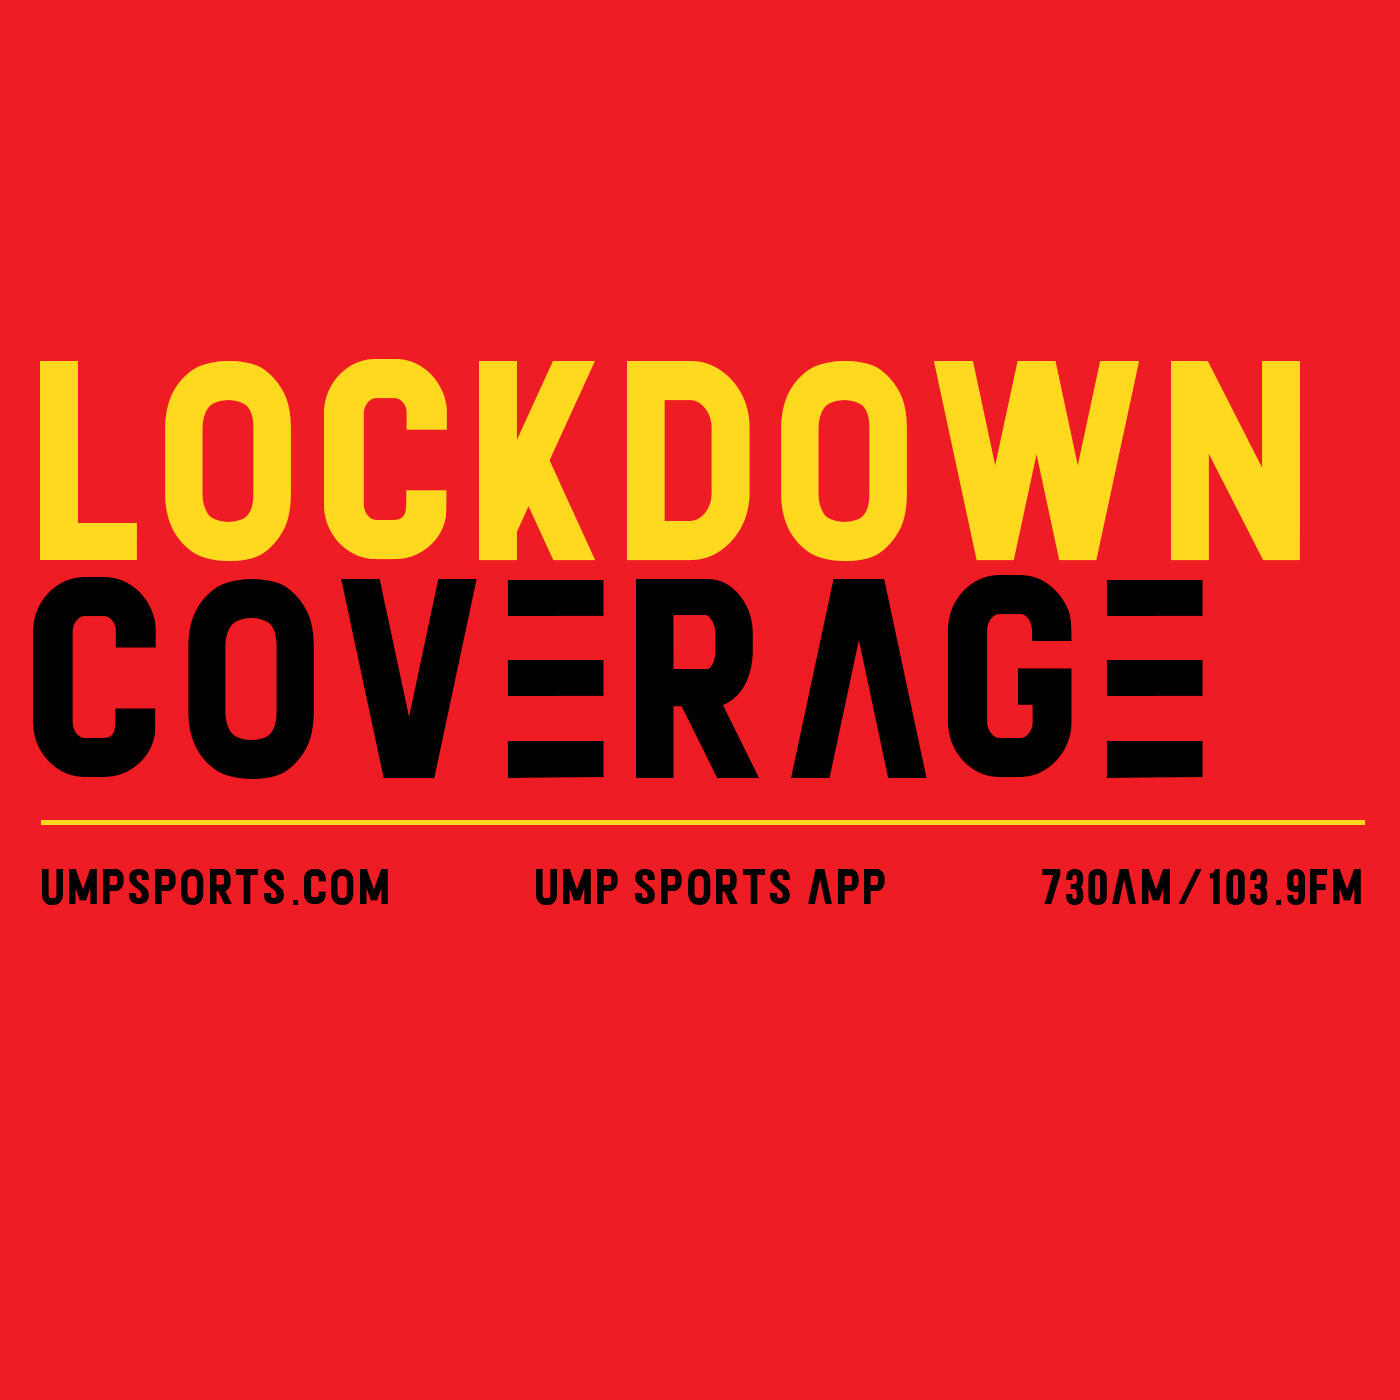 Audioboom / Lockdown Coverage 8-13-19 HOUR 1: